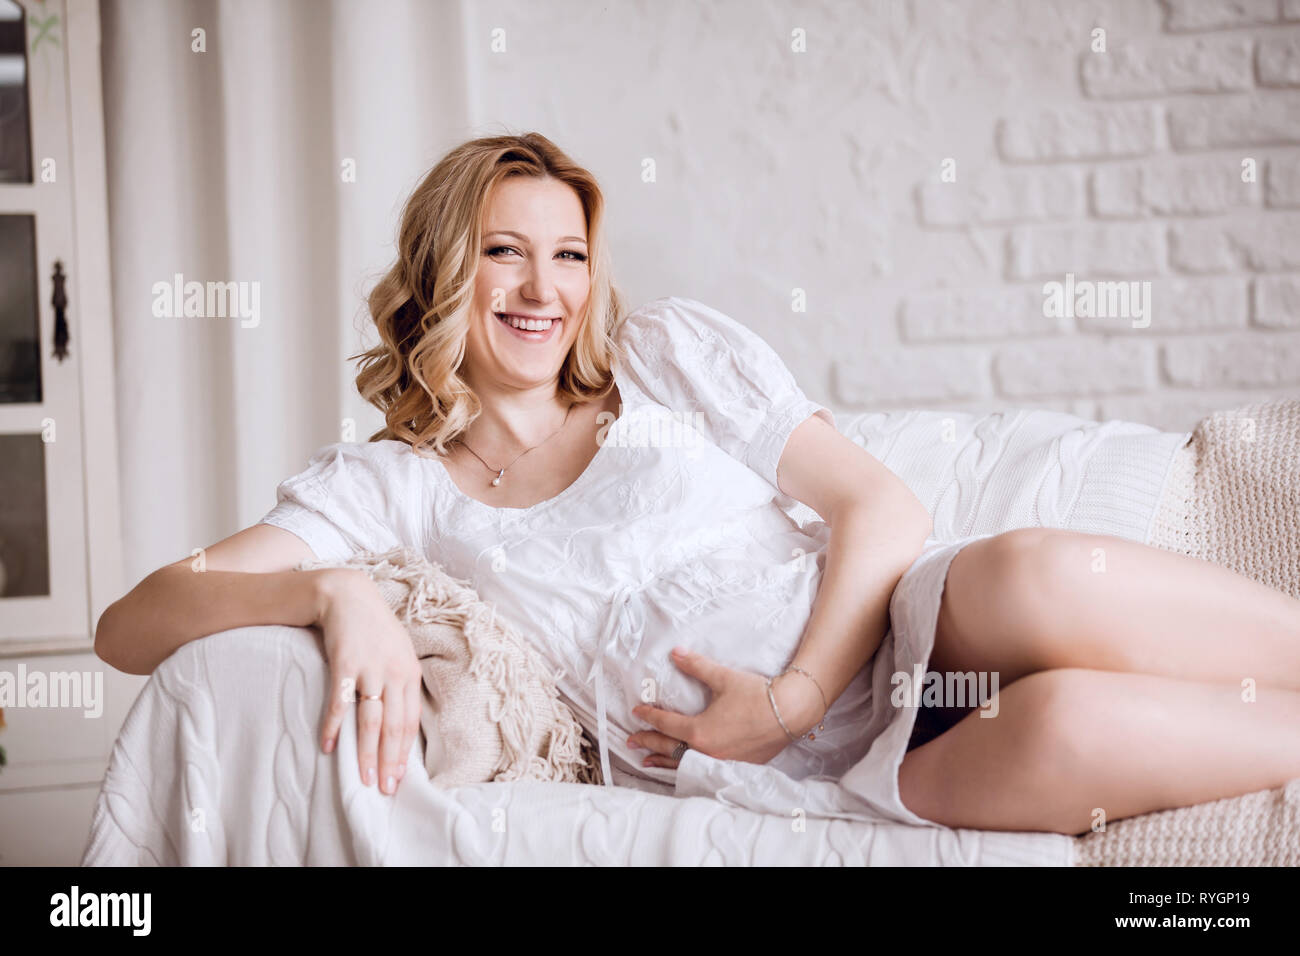 close up. young pregnant woman lying on couch - Stock Image